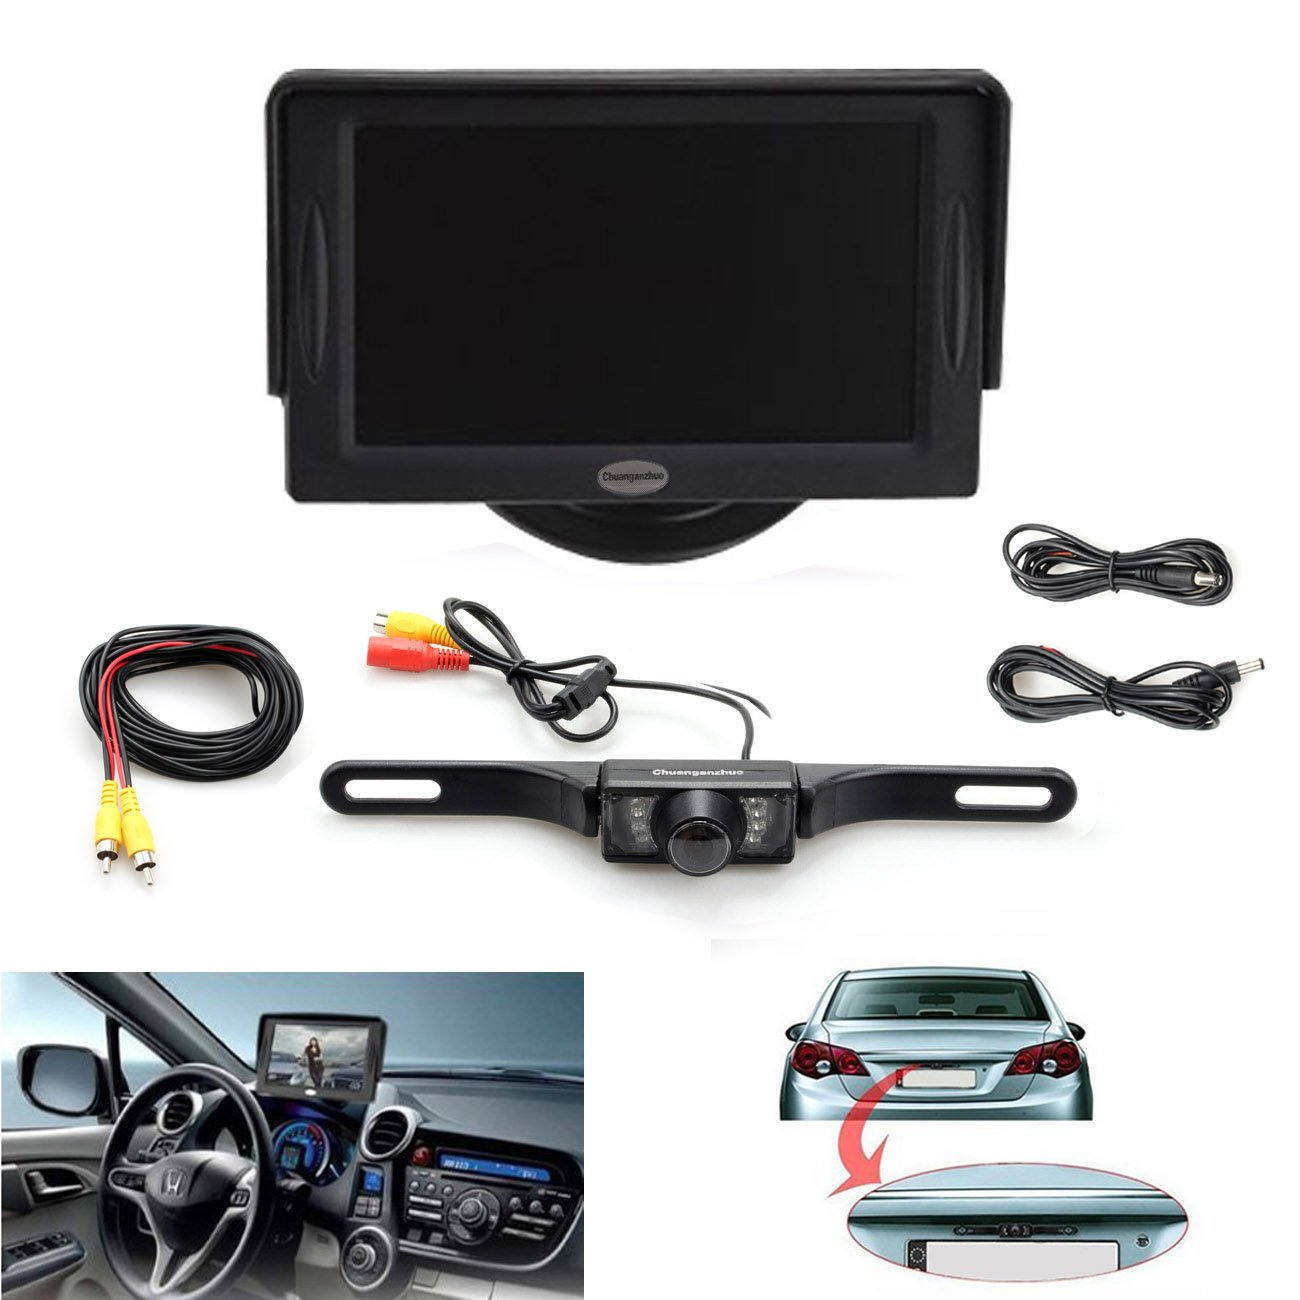 Backup Camera and Monitor Kit For Car,Universal Waterproof Rear-view License Plate Car Rear Backup Parking Camera + 4.3 TFT LCD Rear View Monitor Screen rubber rear trunk cargo tray rear trunk cover floor mats for honda crv 2017 waterproof 3d car styling